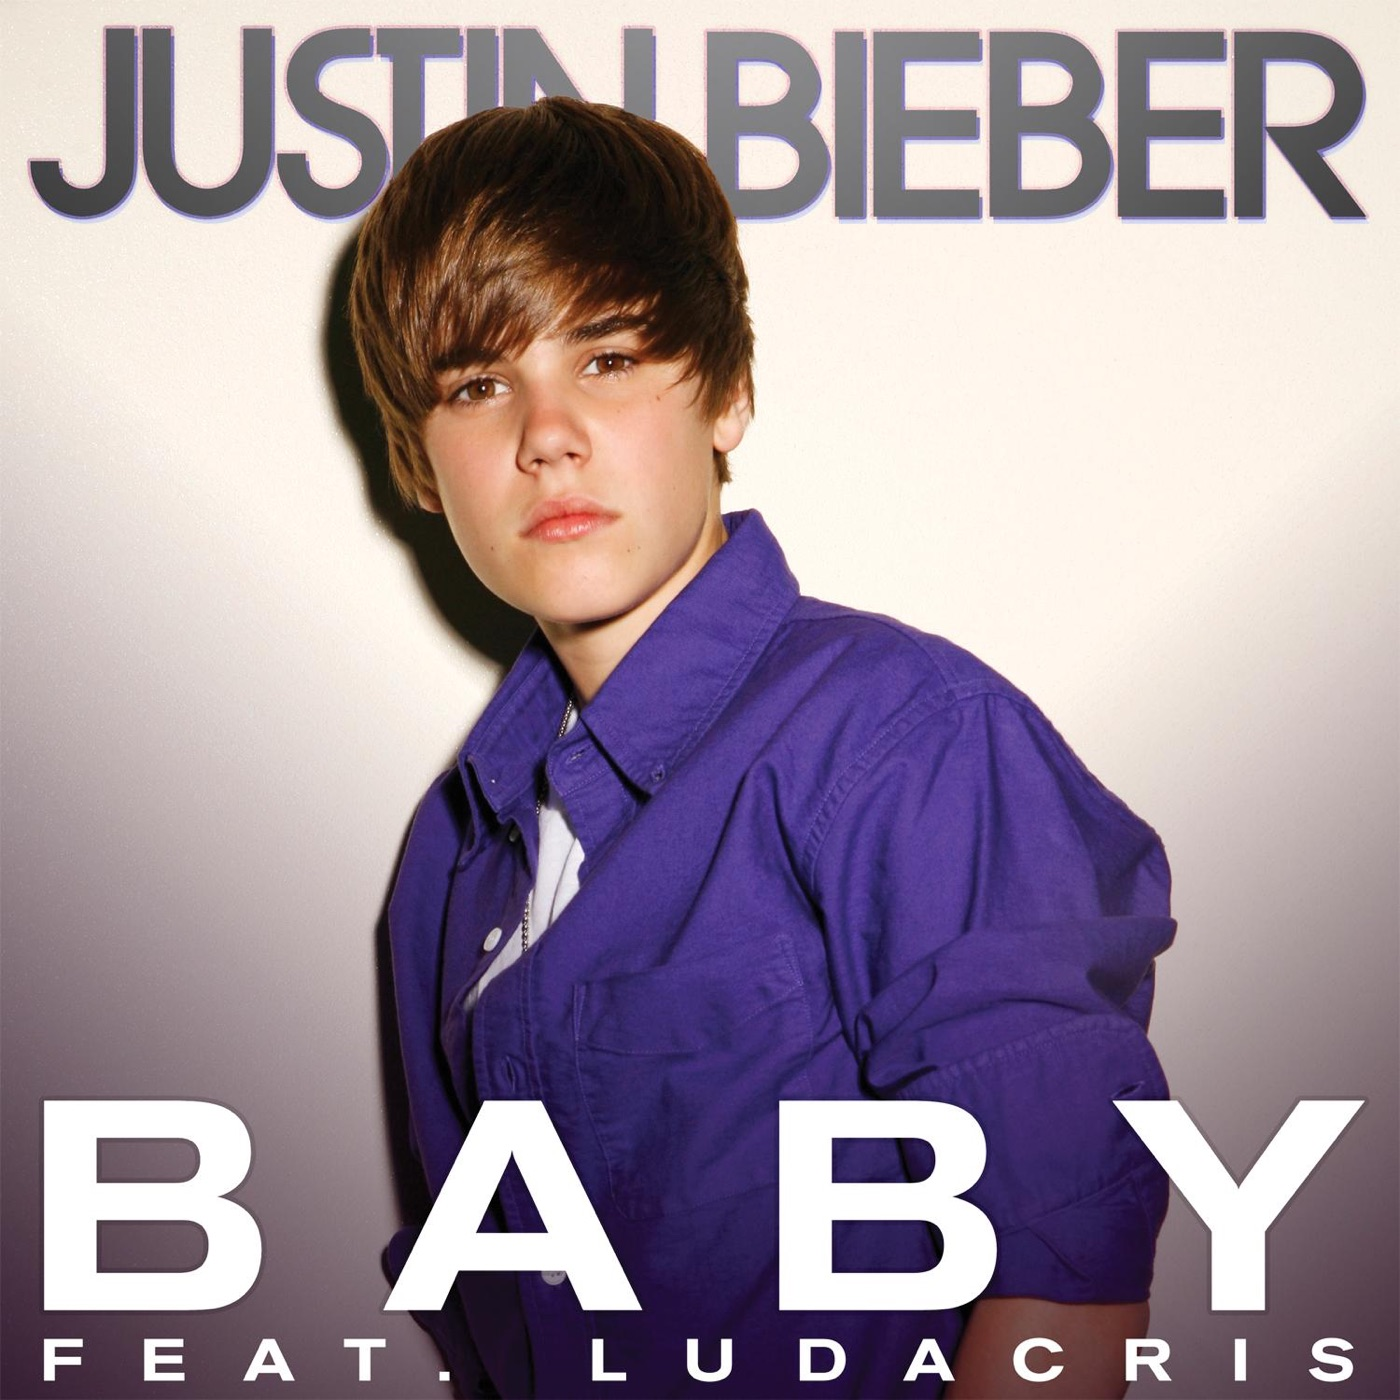 Justin Bieber - Baby (feat. Ludacris) - Single Cover